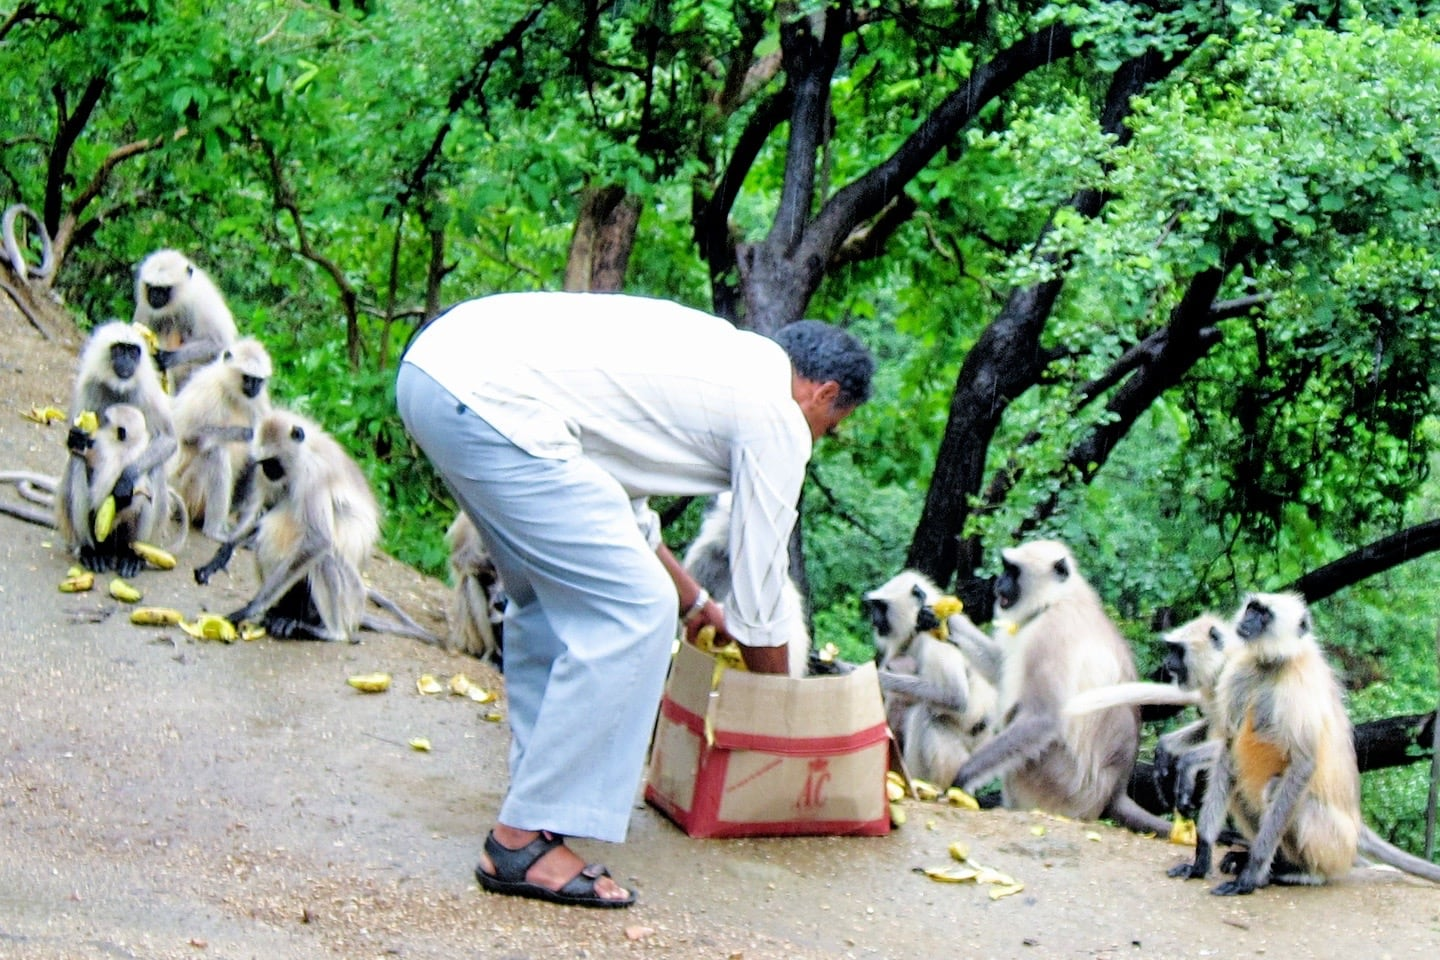 feeding monkeys on bus from jodhpur to udaipur